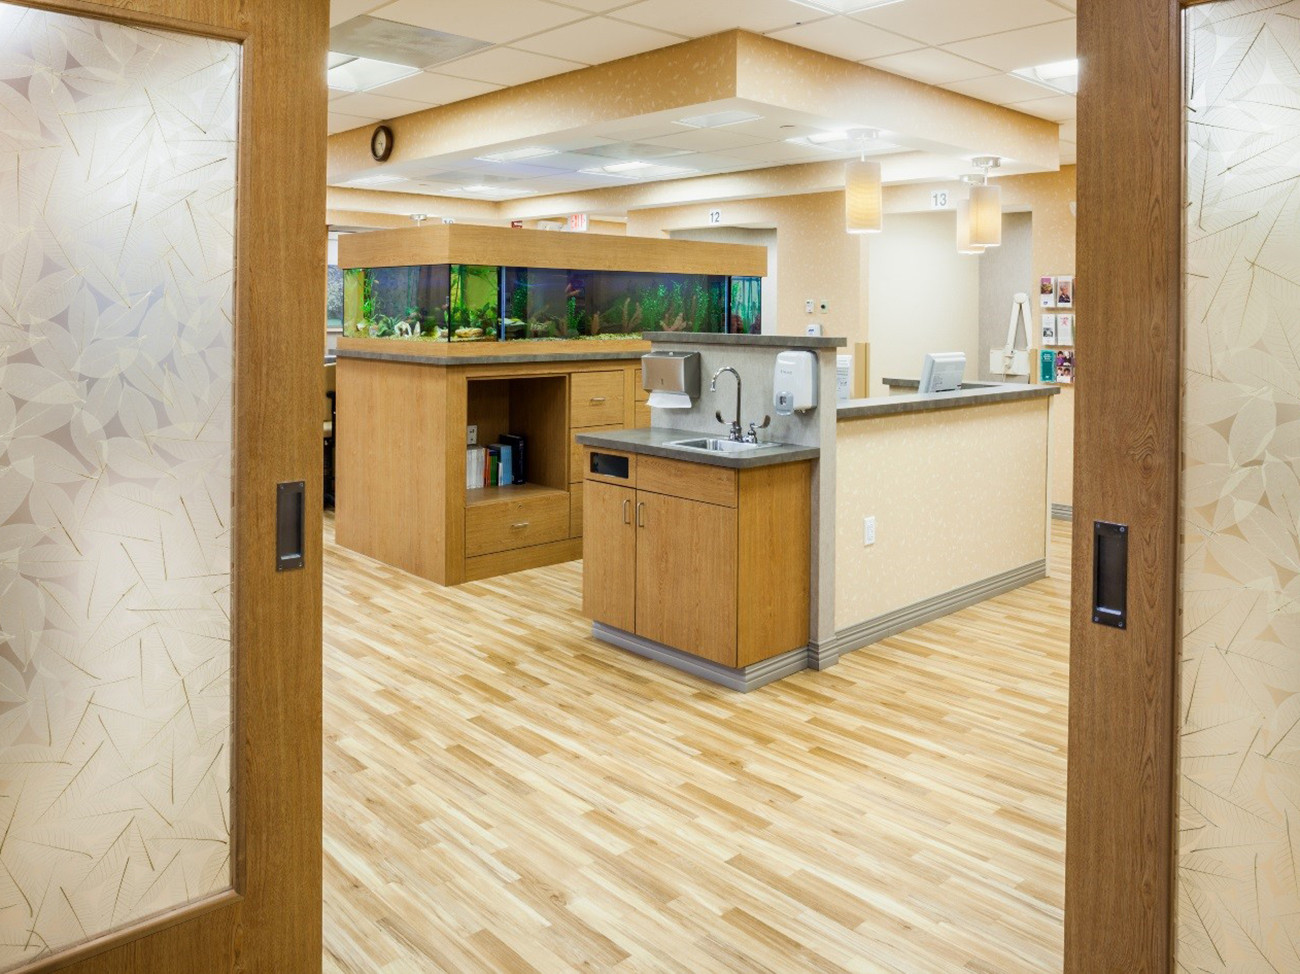 Slocum Dickson Medical Group – Hematology/Oncology Center